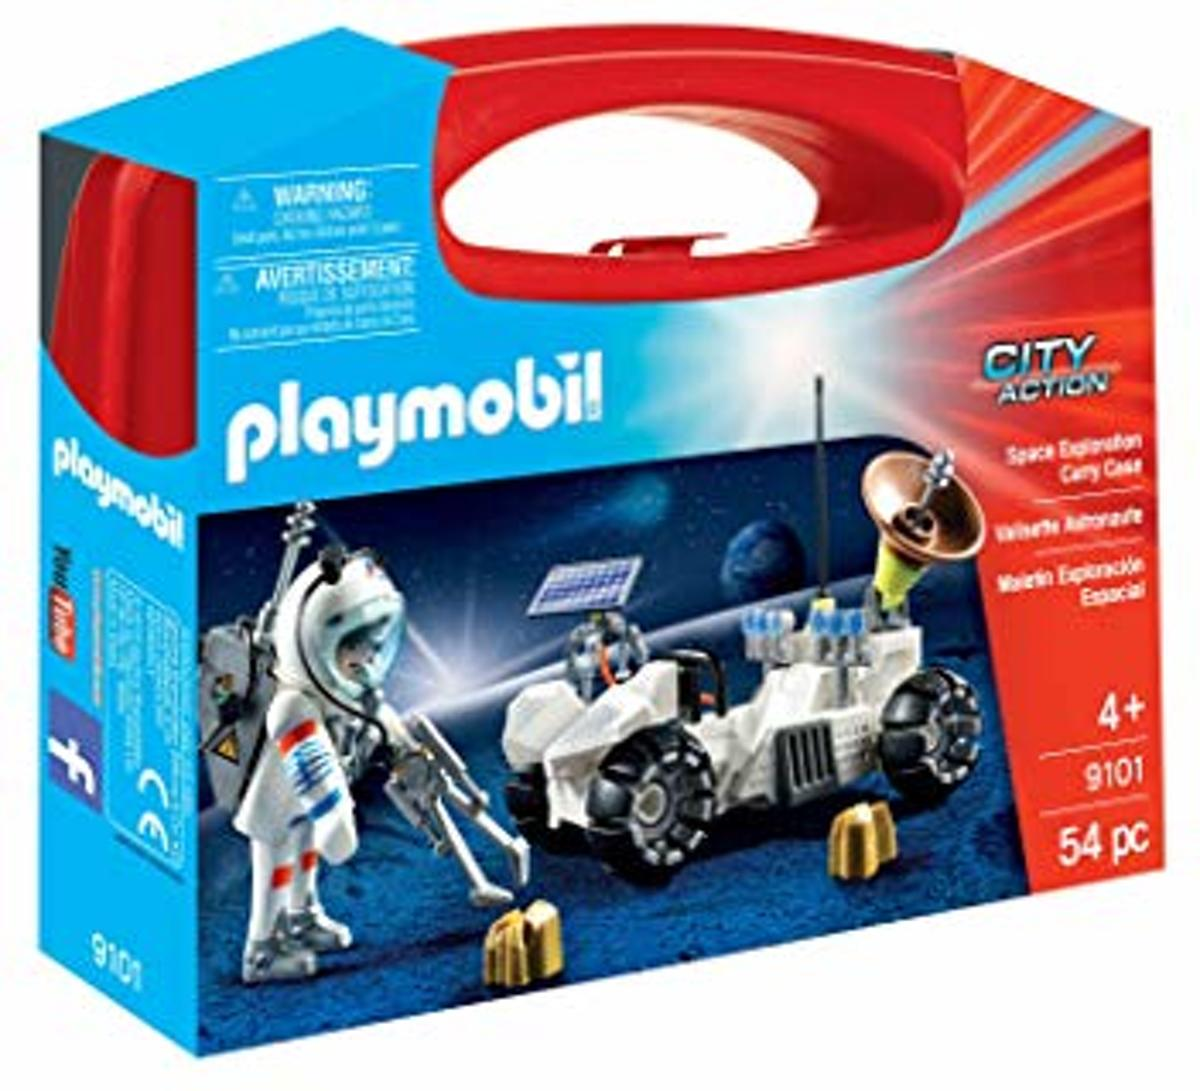 Playmobil 9101 meeneem koffer City Action Astronaut